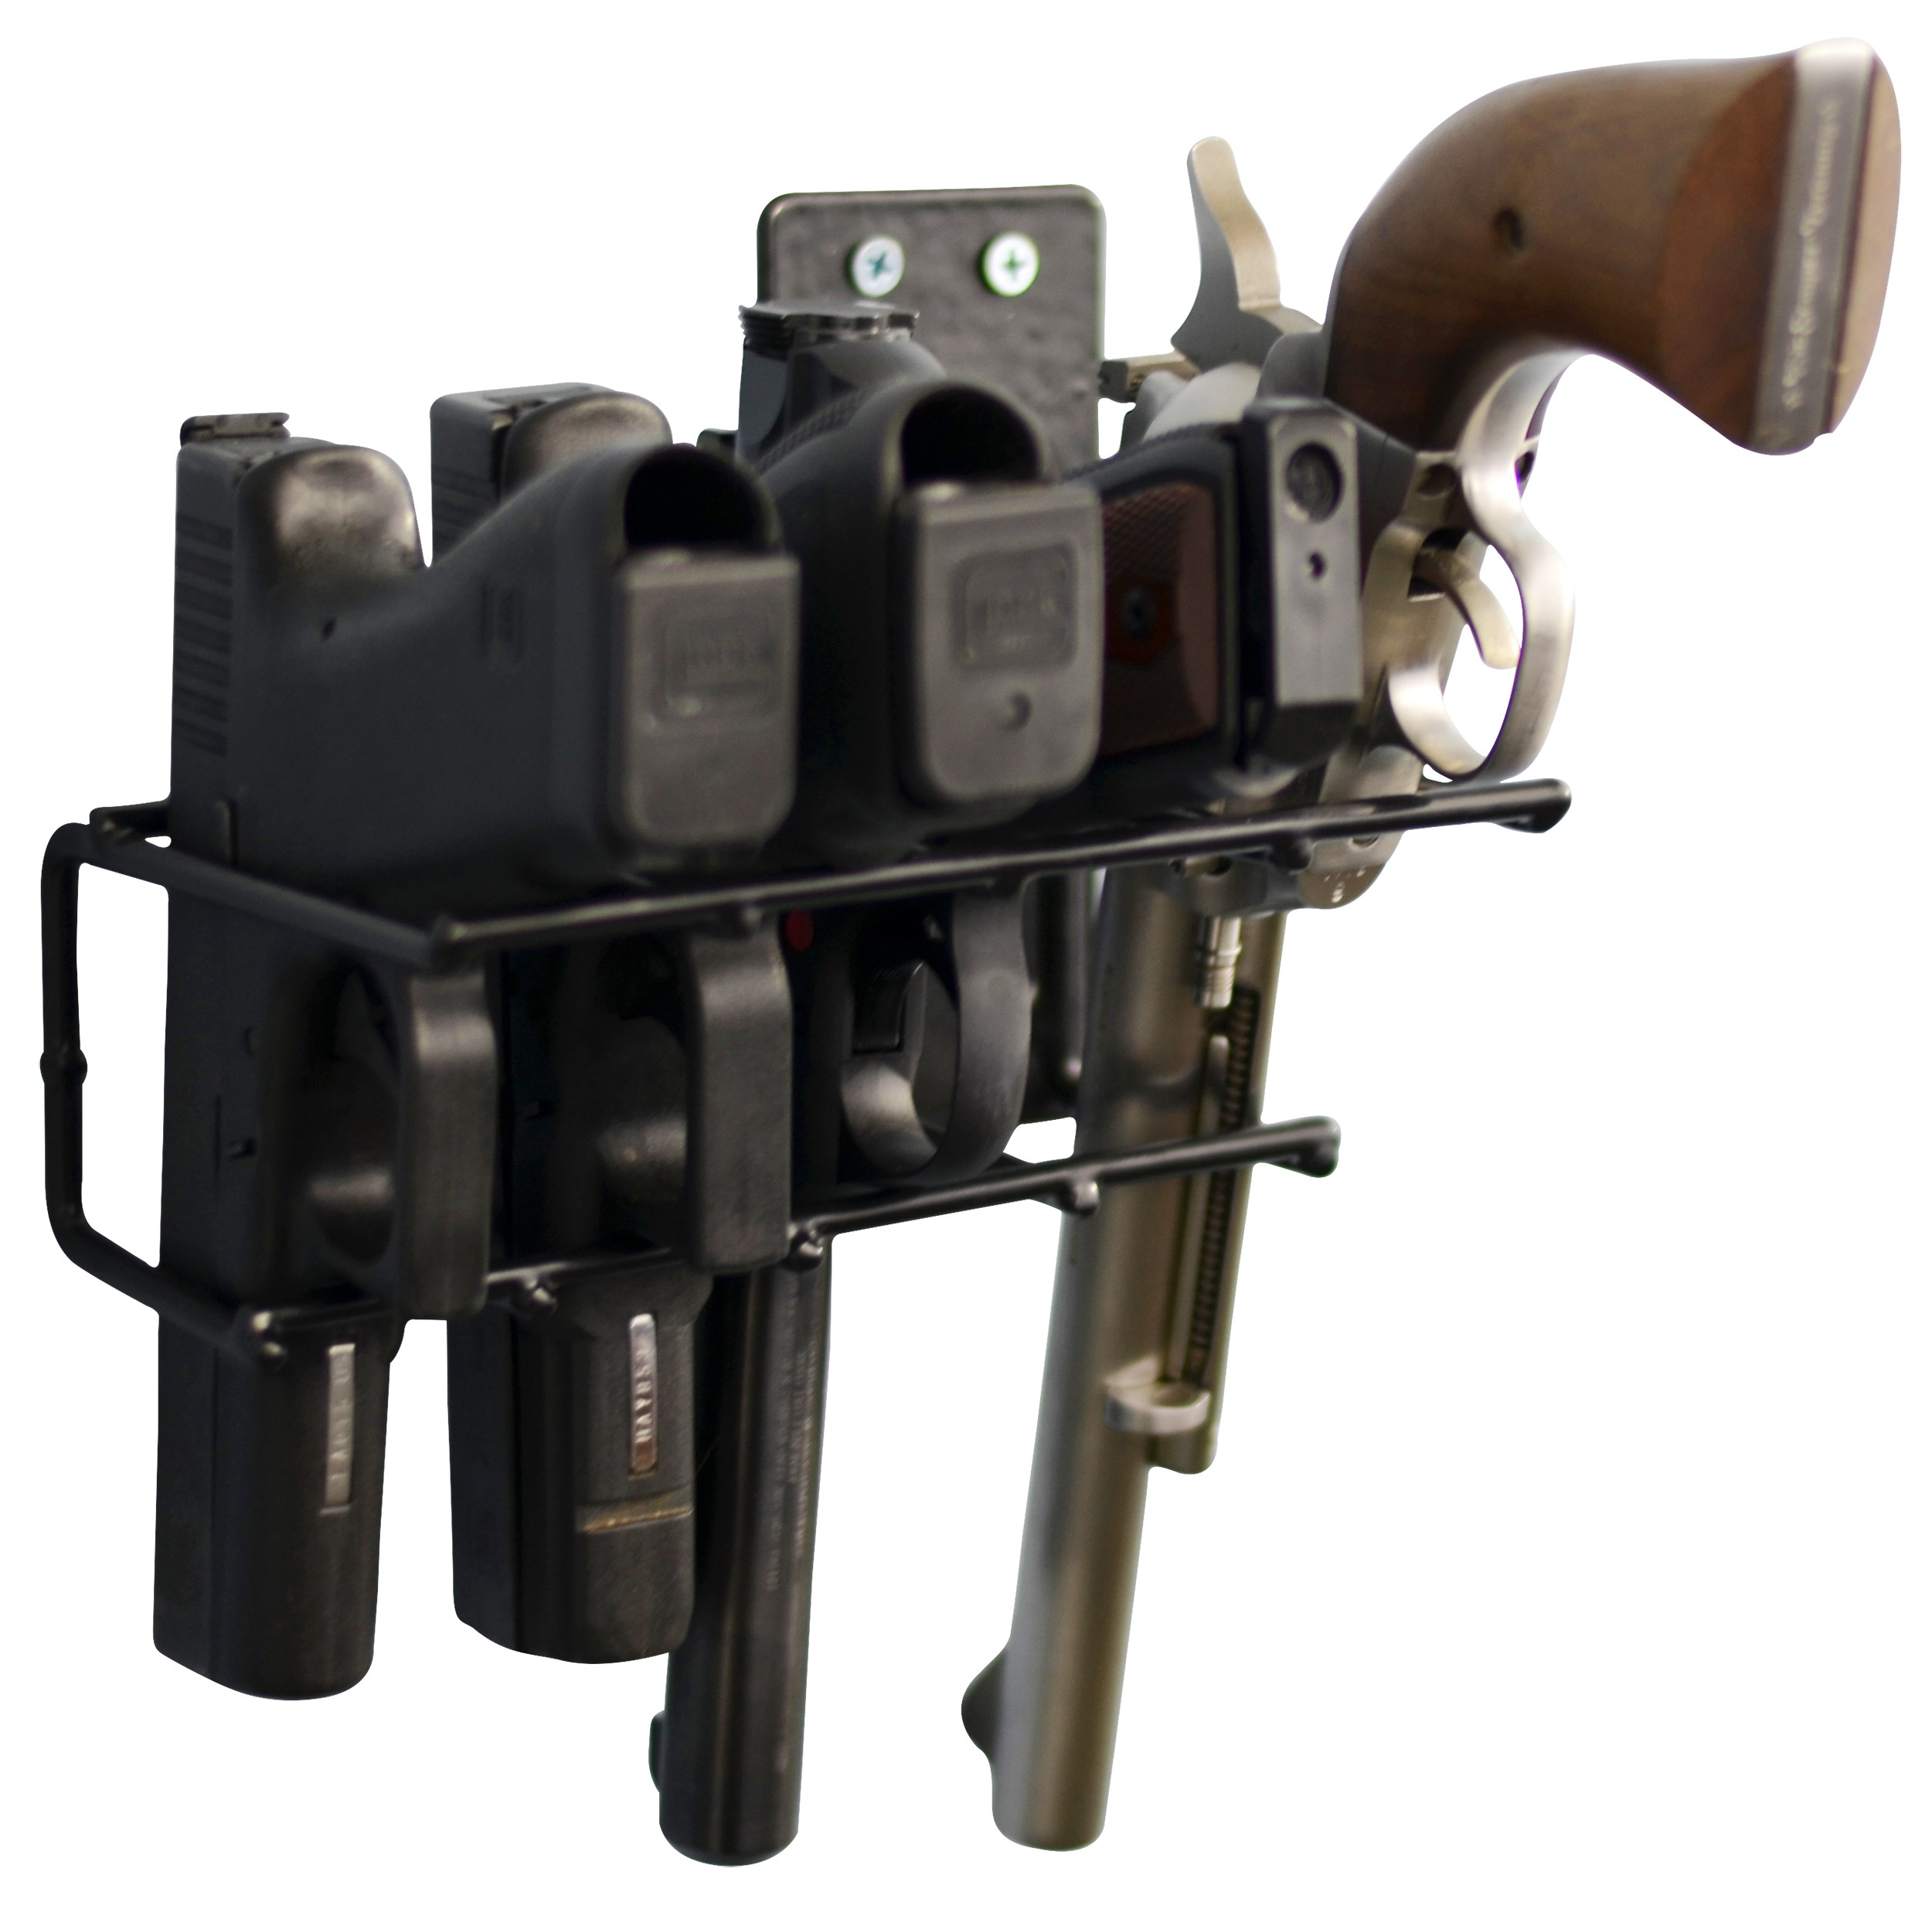 Handgun Wall Mount Rack 4 Gun Model, Black